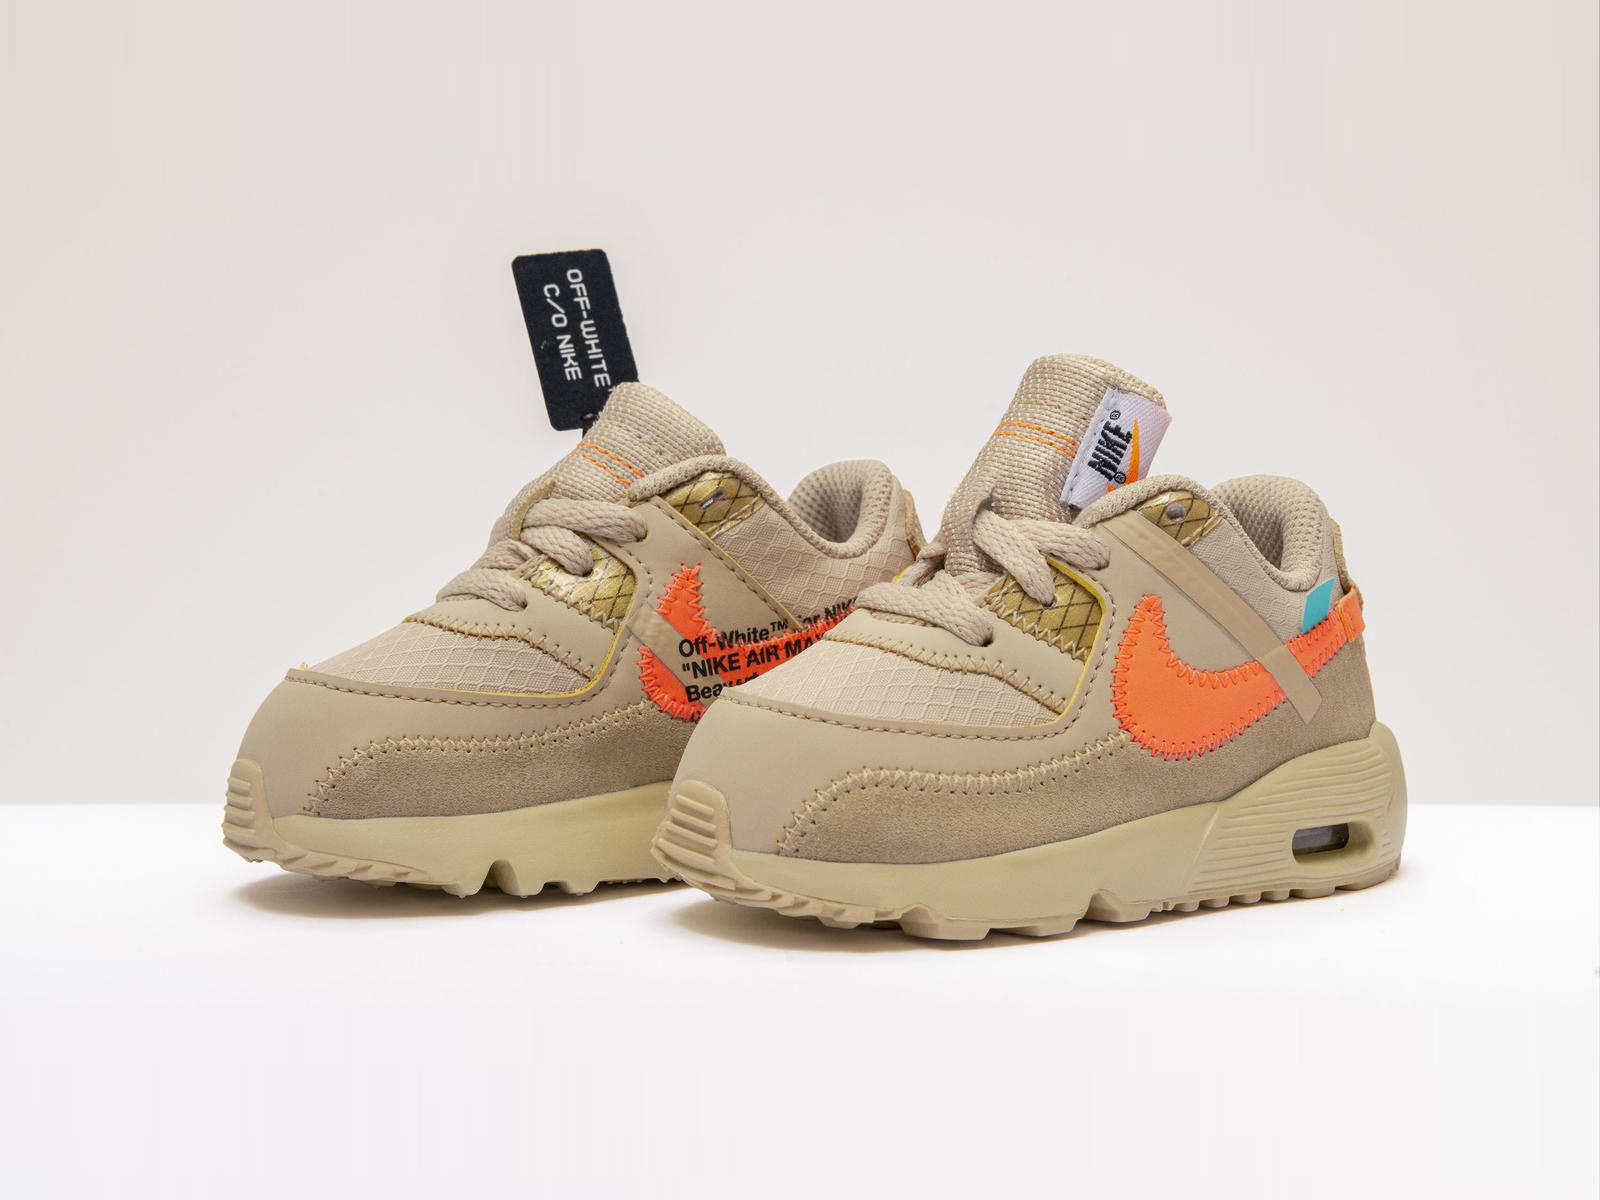 The Off-White x Nike Air Max 90s Are Arriving In Toddler Sizes